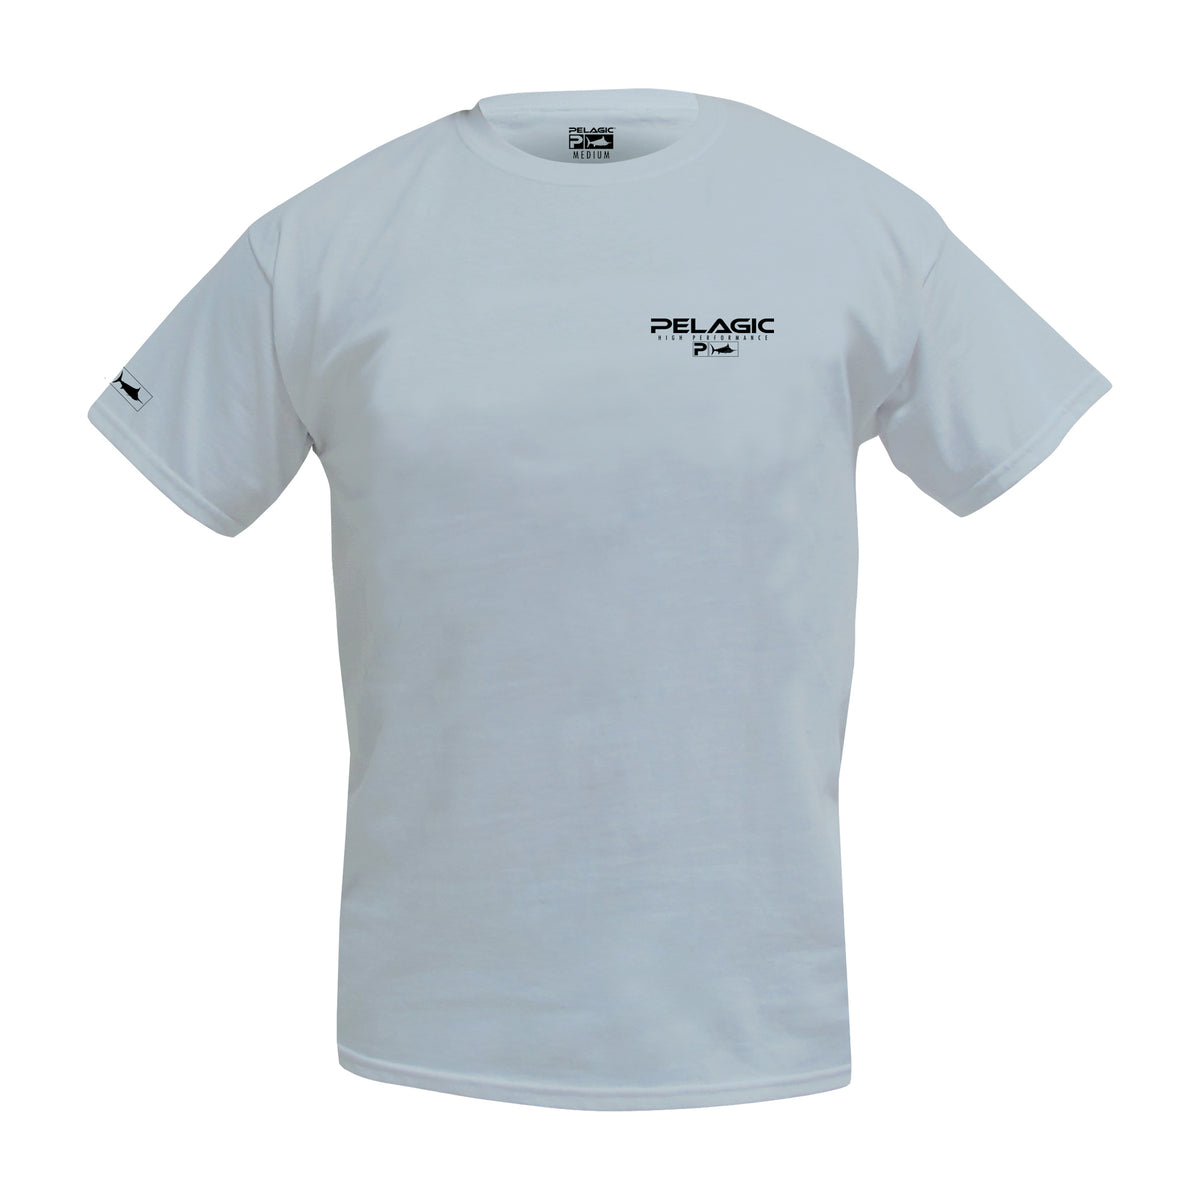 Hexed Yellowfin Premium T-shirt Big Image - 2